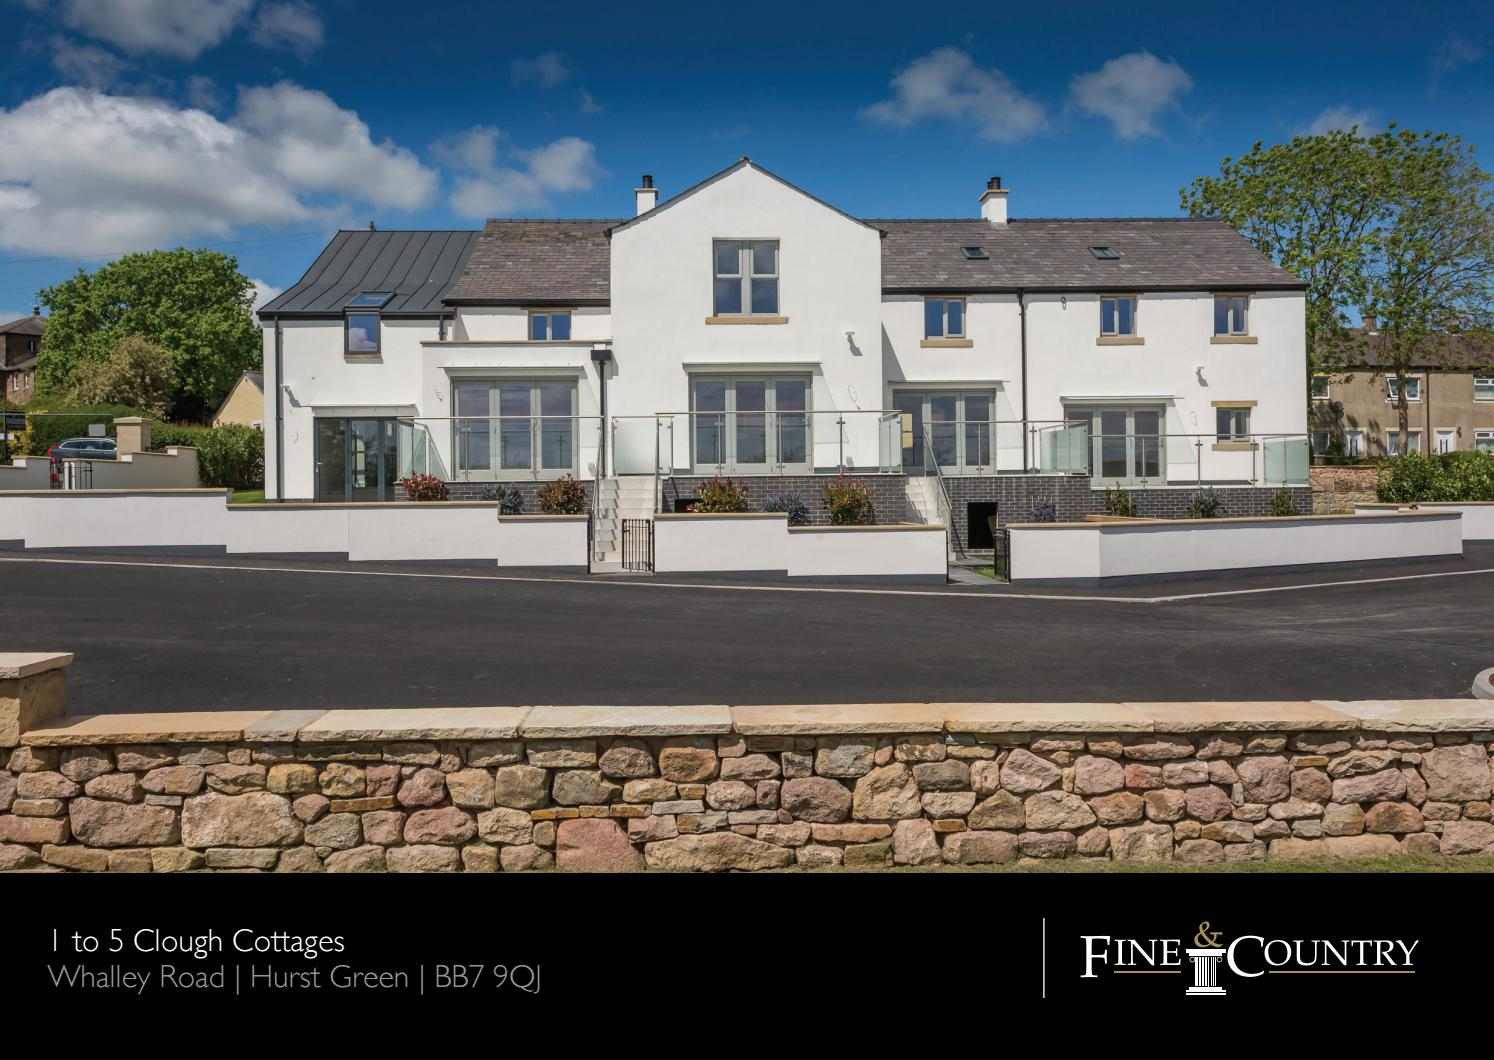 Whalley Road, Hurst Green by Fine & Country - issuu